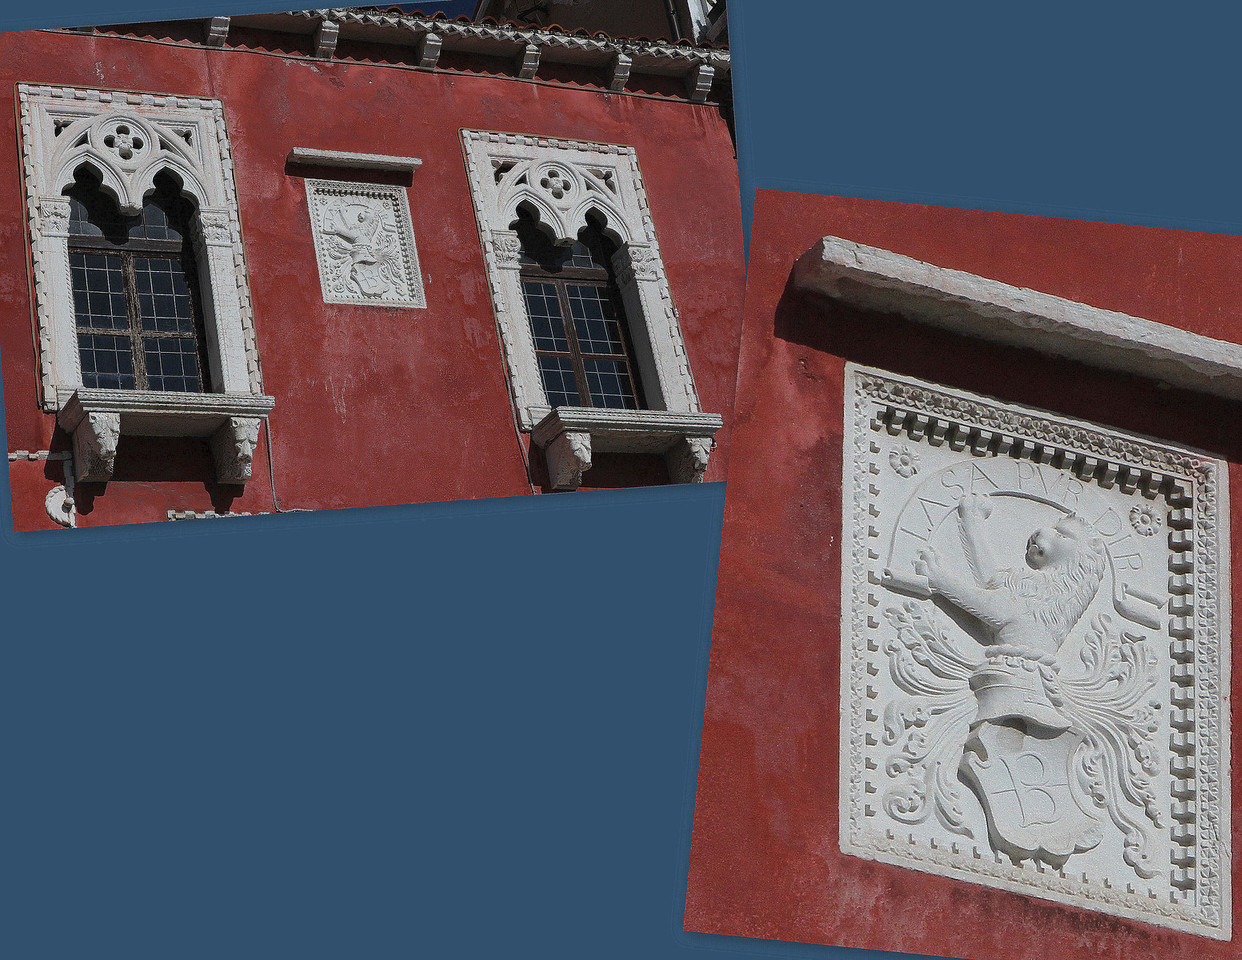 """There, betwen the two windows, for all of Piran to see is a stone relief of a lion with a banner in its mouth and the Latin inscription """"Lassa pur dir"""" above it.  The translation is a reminder for the merchant's loose lipped neighbors: """"Let them talk"""""""